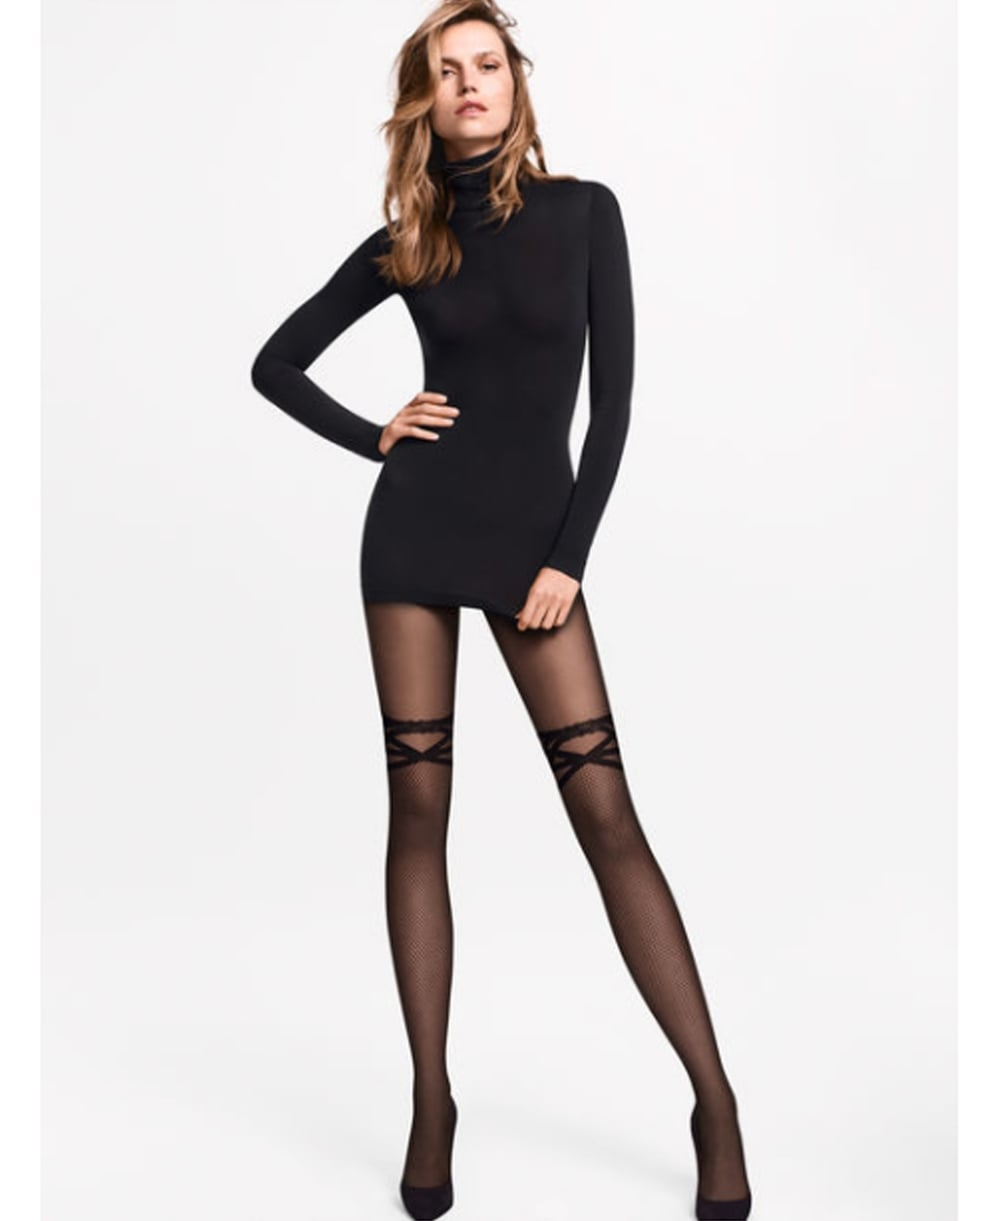 532f4498f Wolford Katy Net Tights - Tights from luxury-legs.com UK